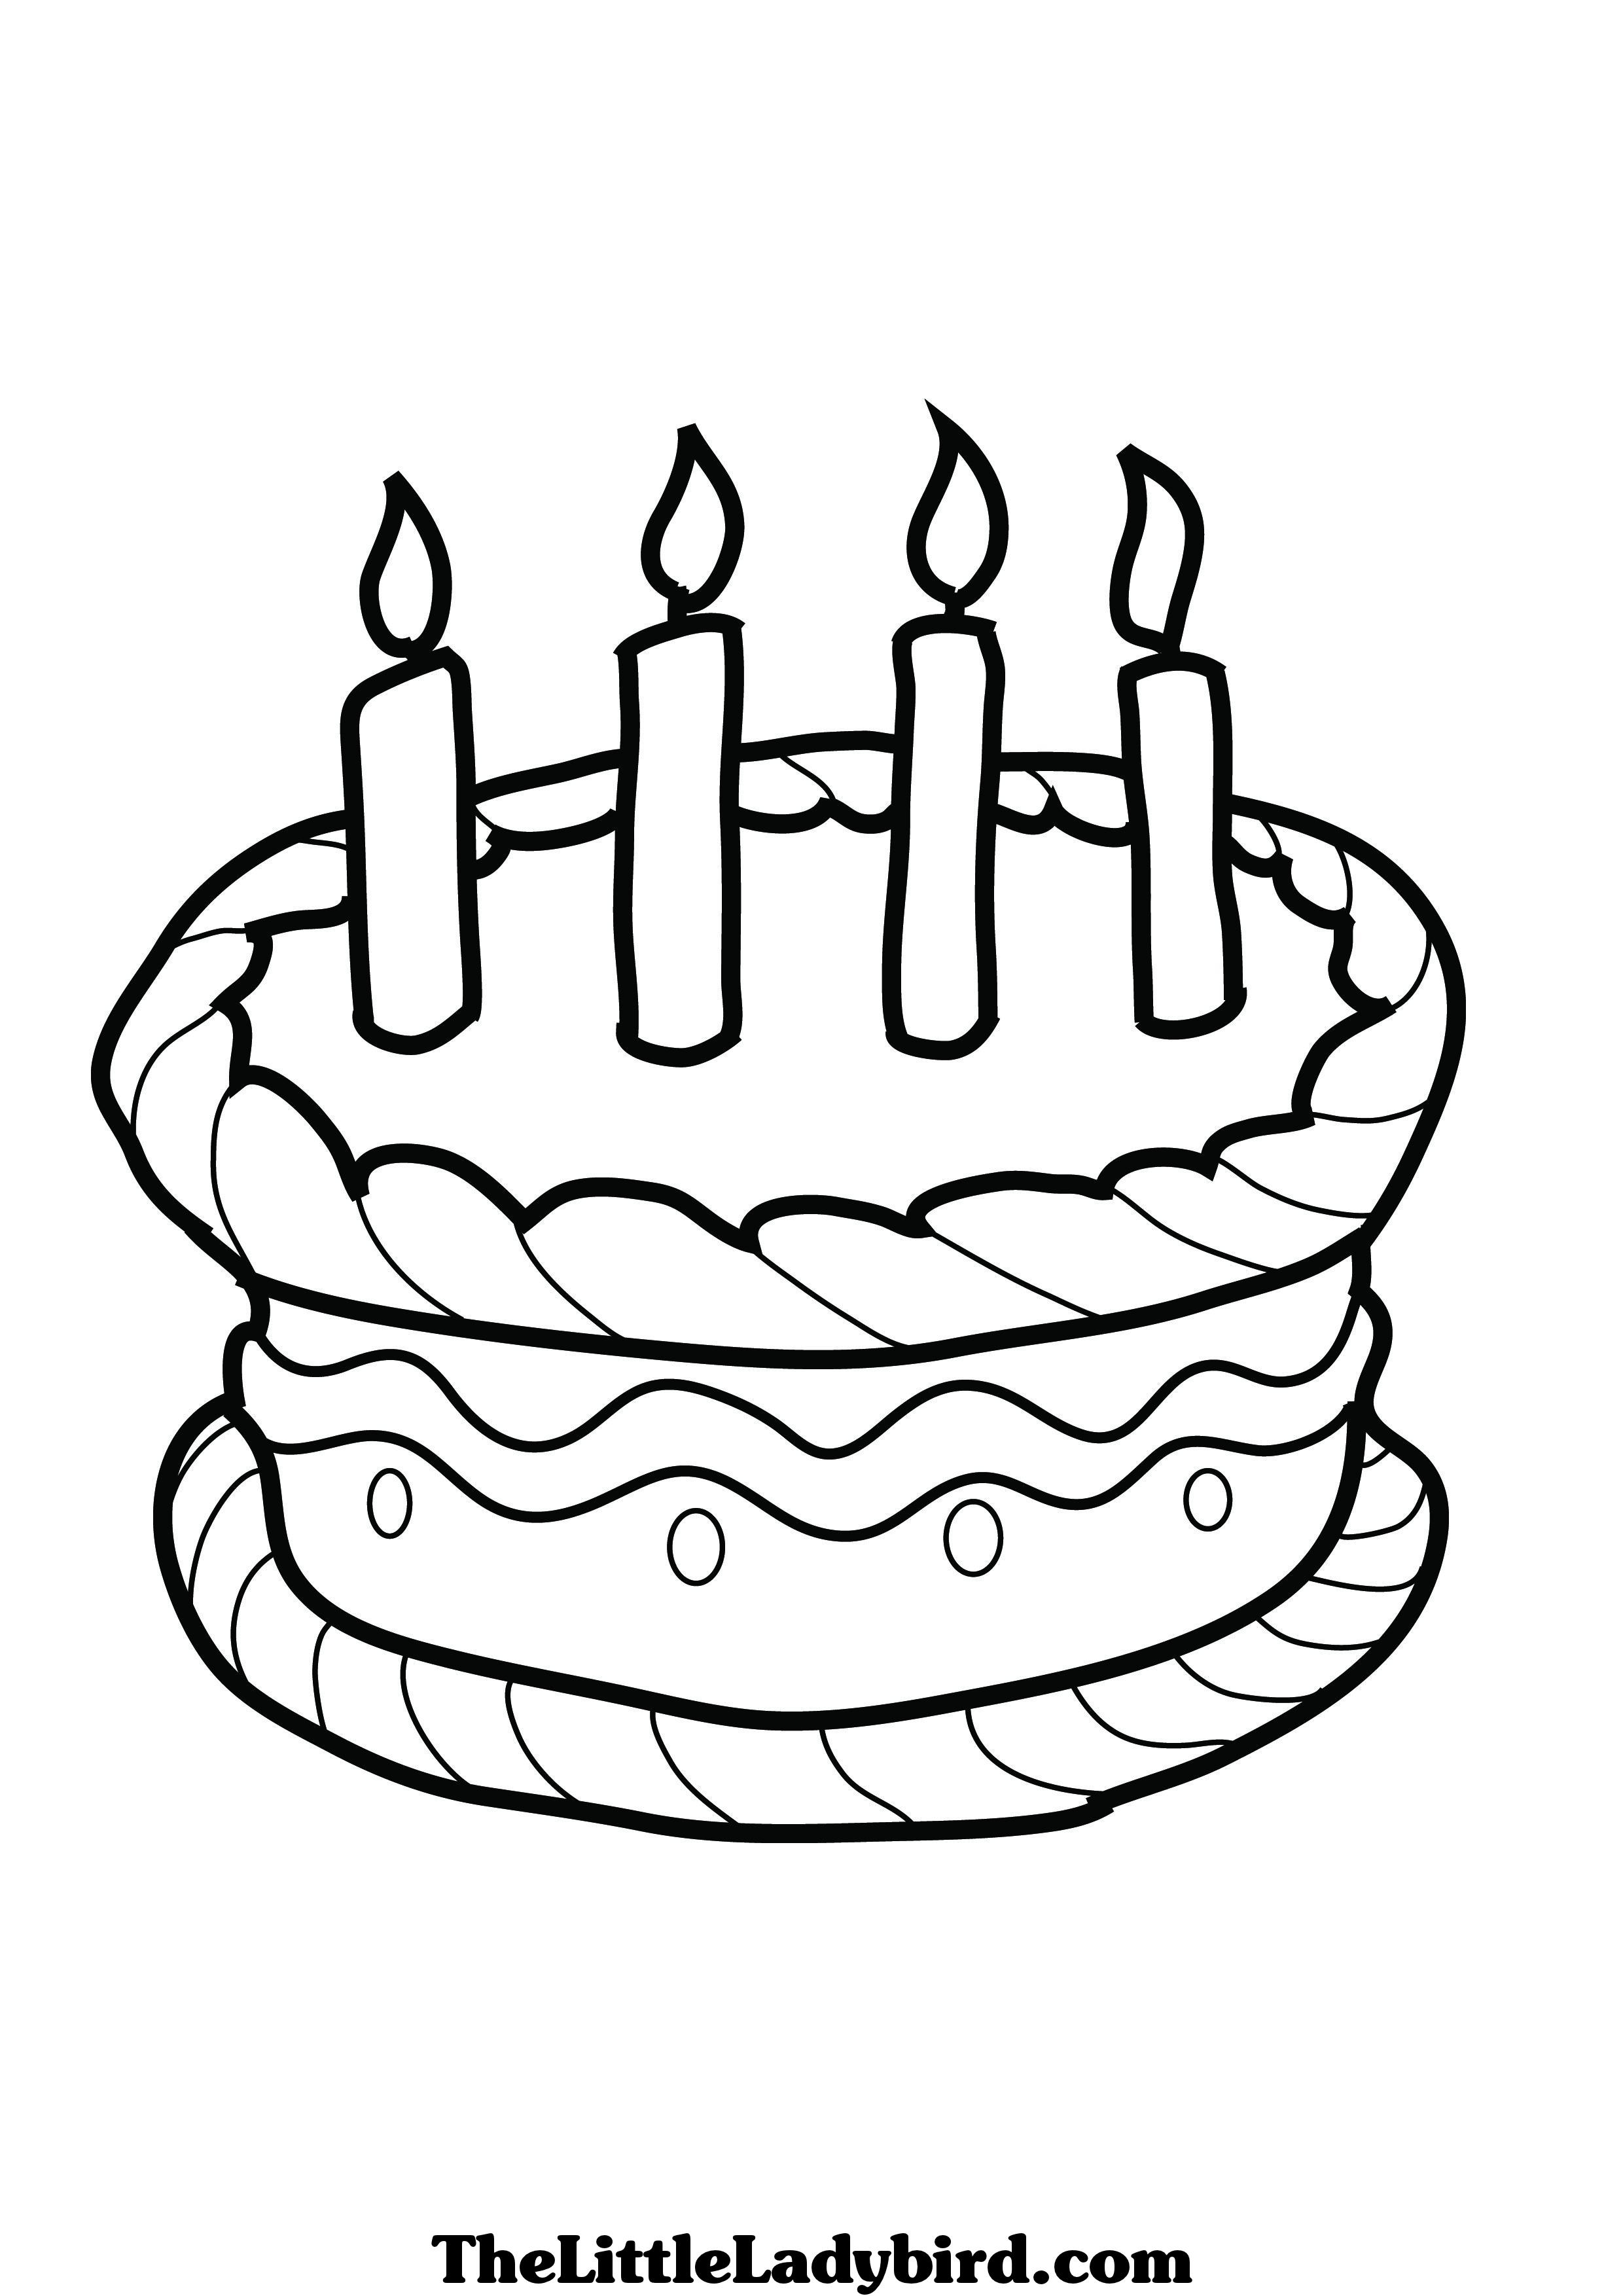 birthday cakes to colour in sheets ; birthday-cake-coloring-pages-awesome-design-ideas-sheet-for-kid